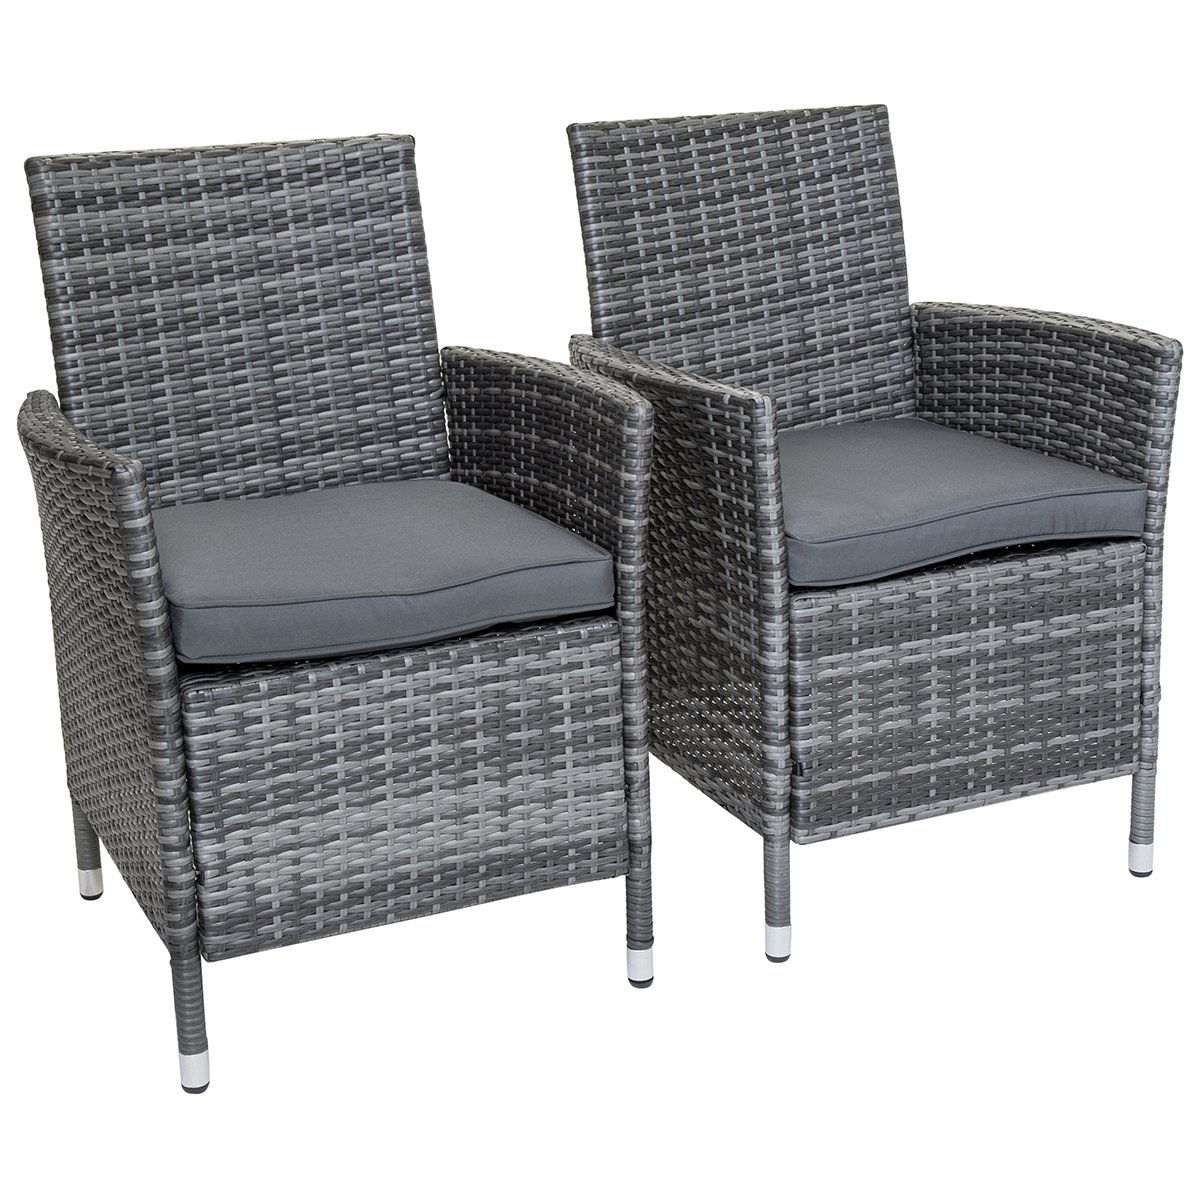 Napoli pair of rattan dining chairs garden furniture grey